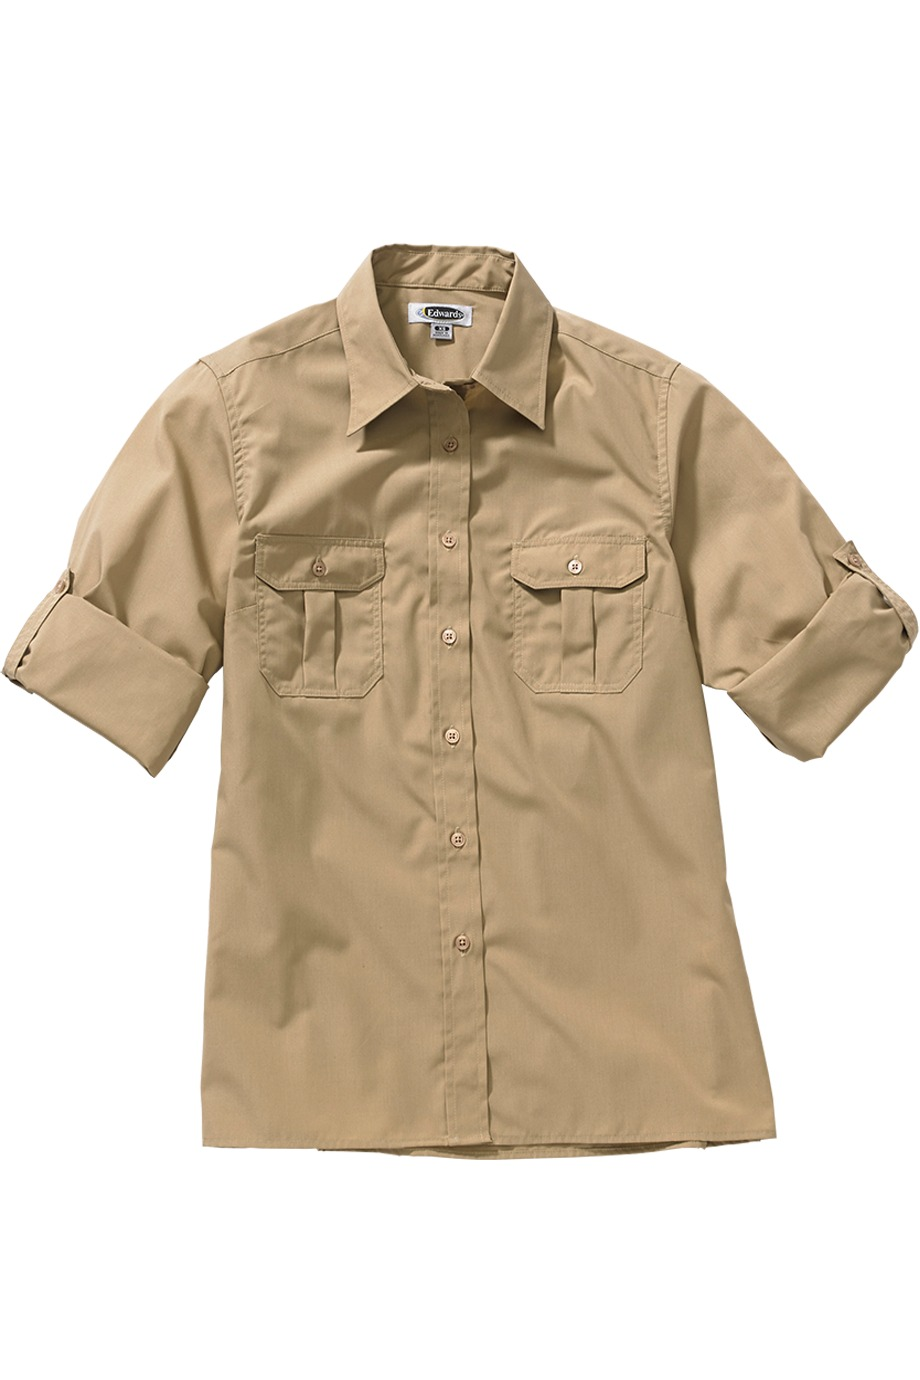 Edwards Garment 5288 - W Roll Sleeve Shirt